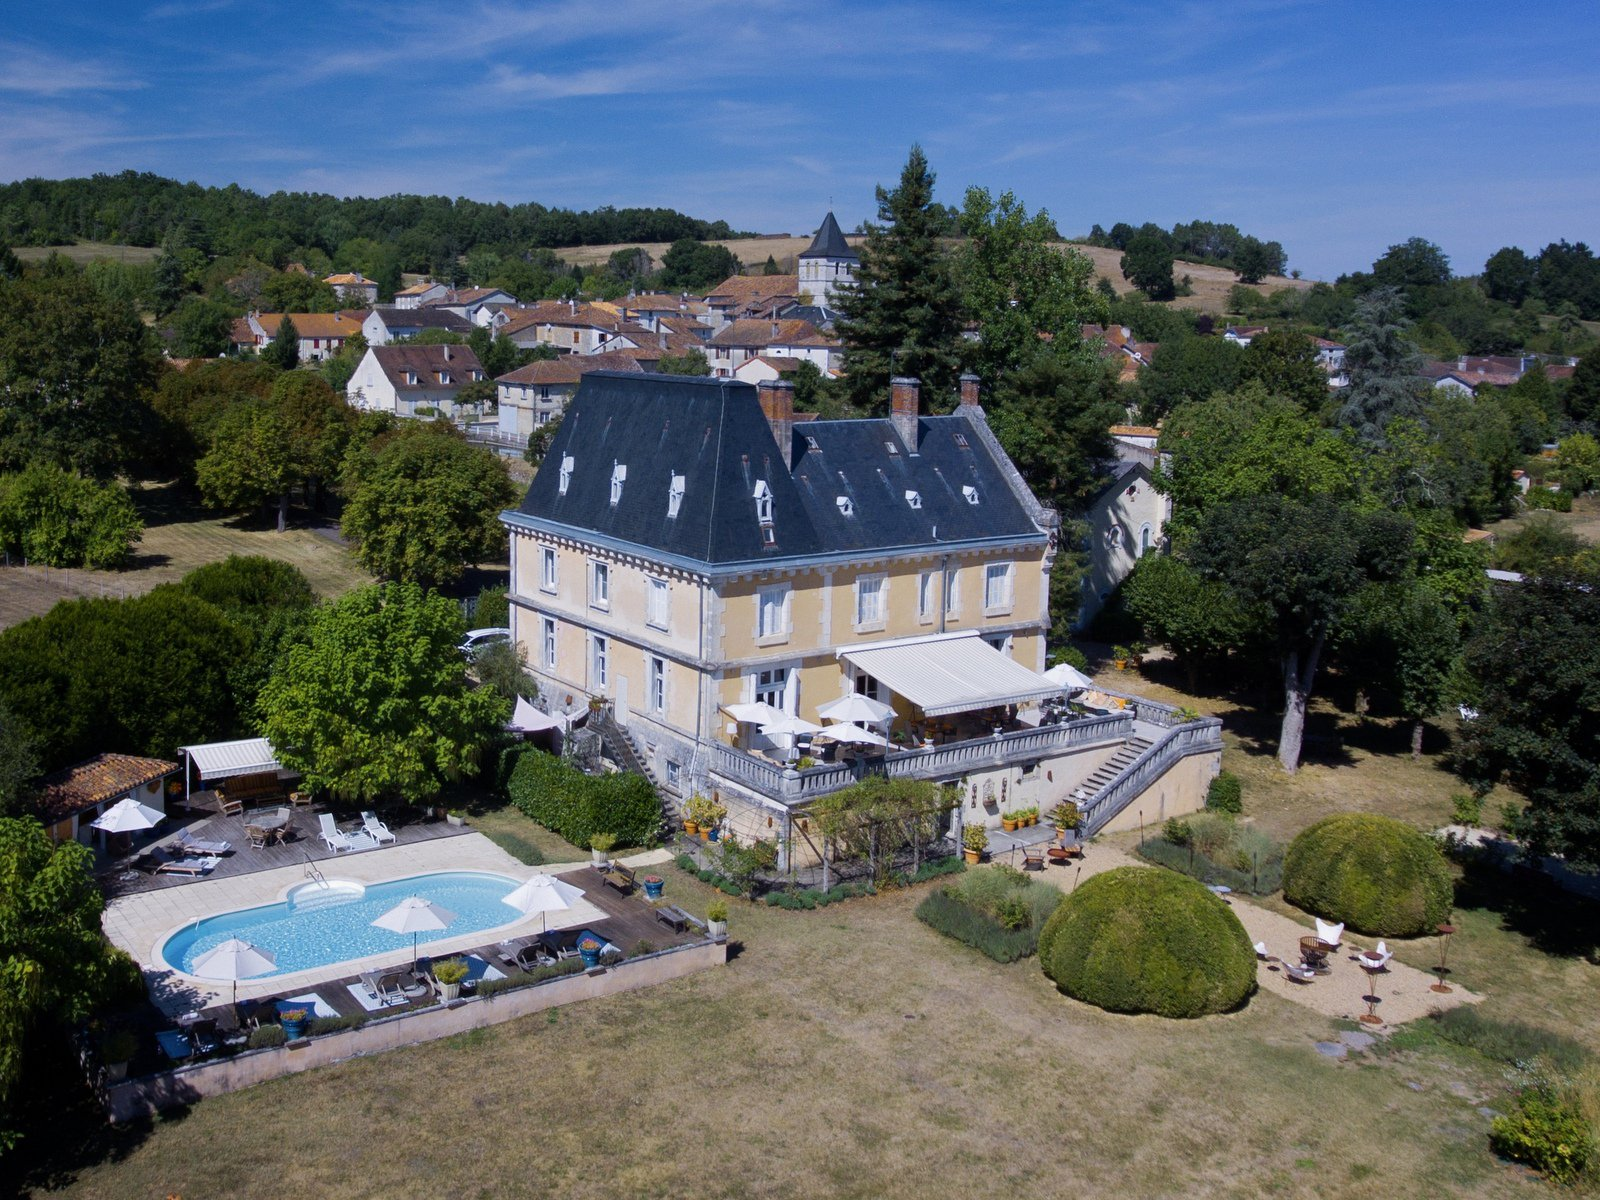 The property comprises a fine 19th-century château with two additional residences and a pool terrace in its three-hectare grounds (7.4 acres), and a third residence near the center of the village.